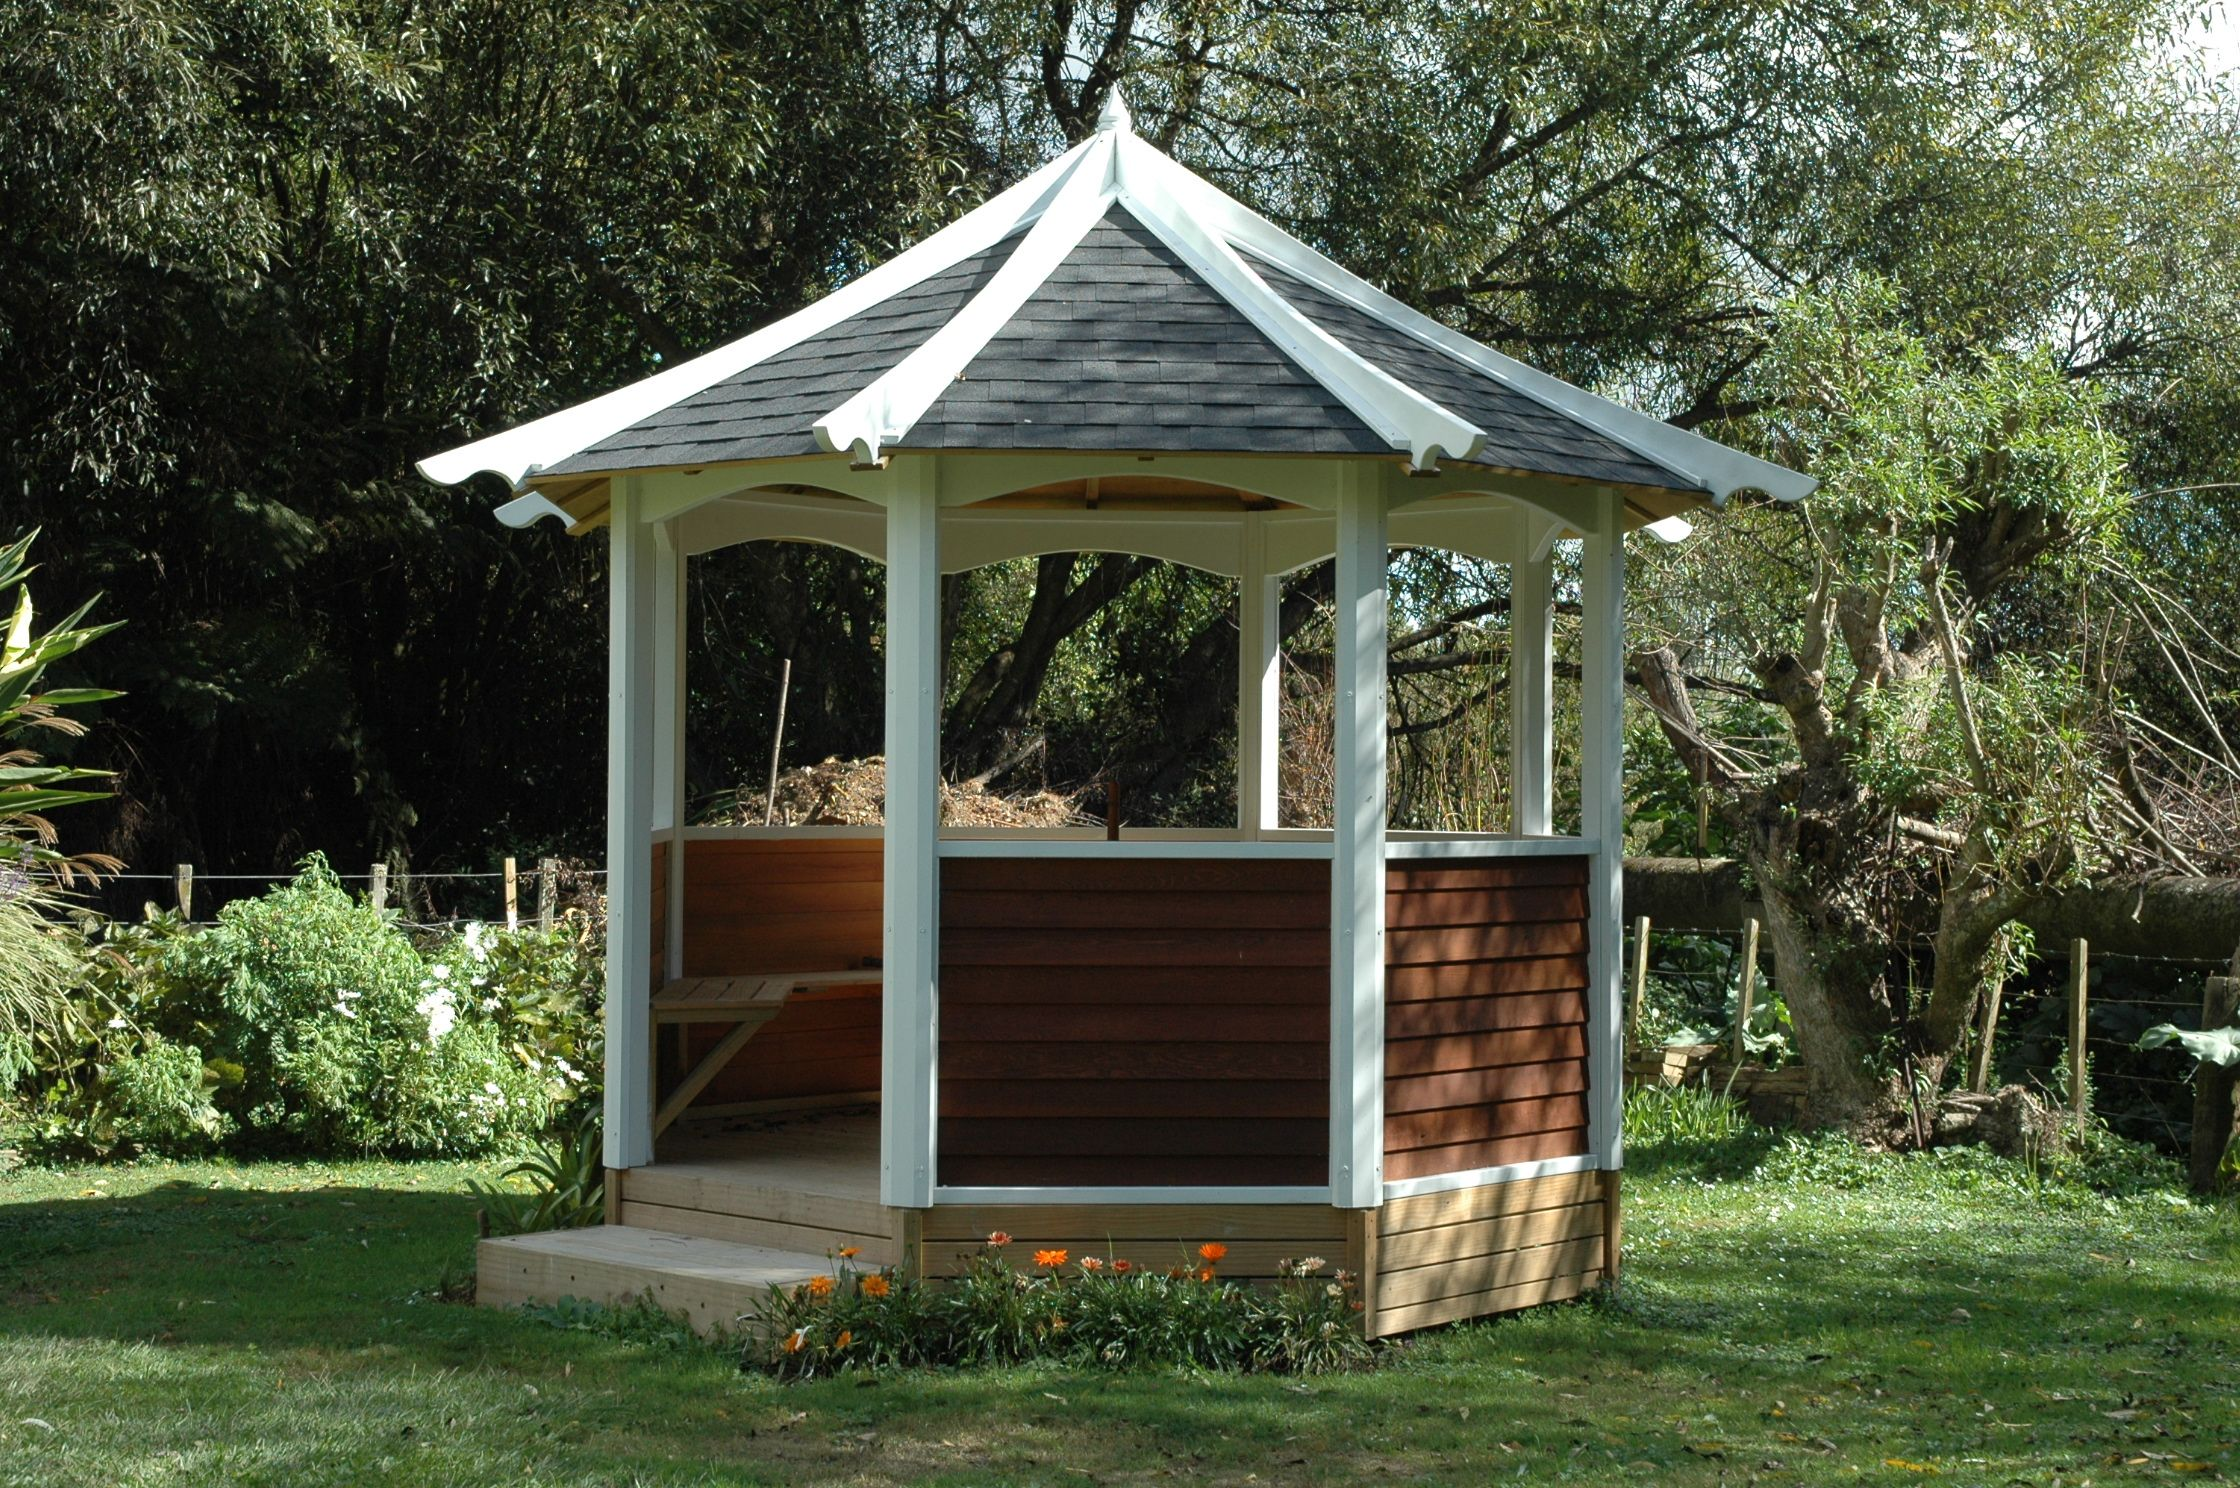 3 0m Octagonal Gazebo Painted White Posts And Arched Roof Rafters